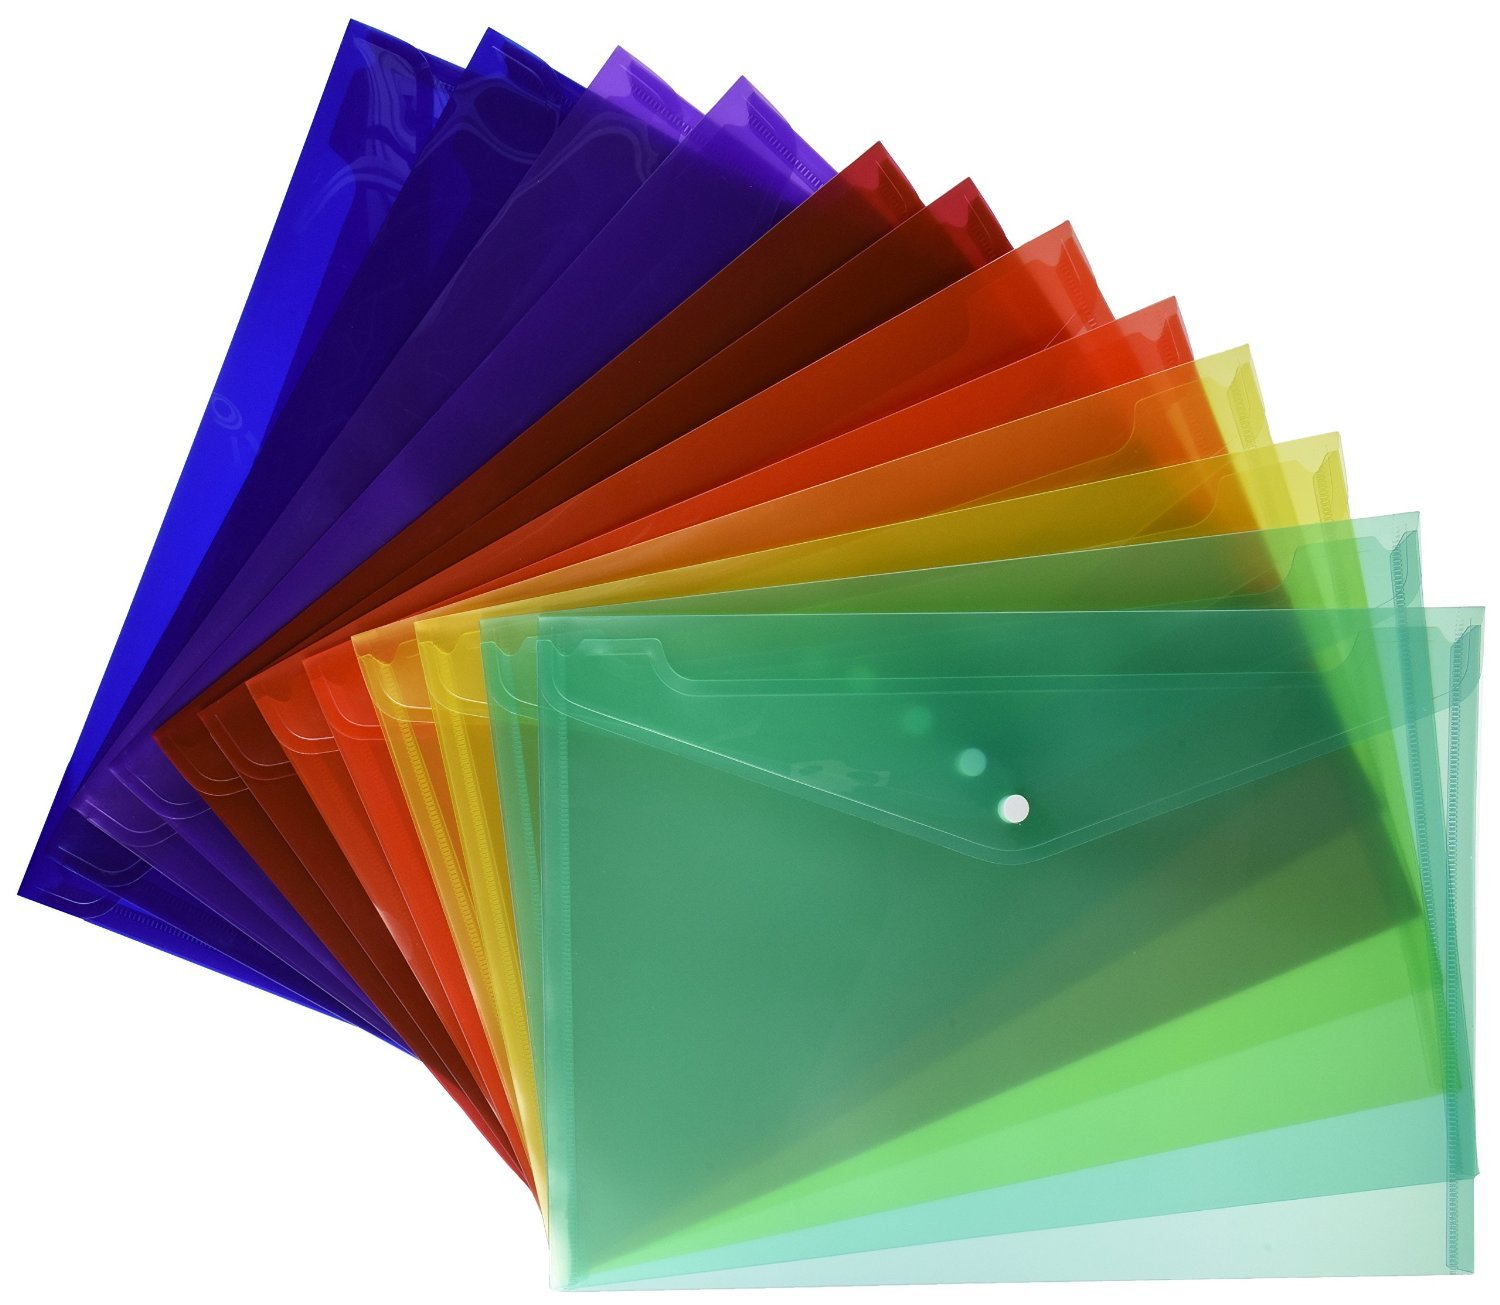 Lightahead LA-7550 (12 packs of 24 pieces each) Clear document Poly folder with snap button, in 6 assorted Colors